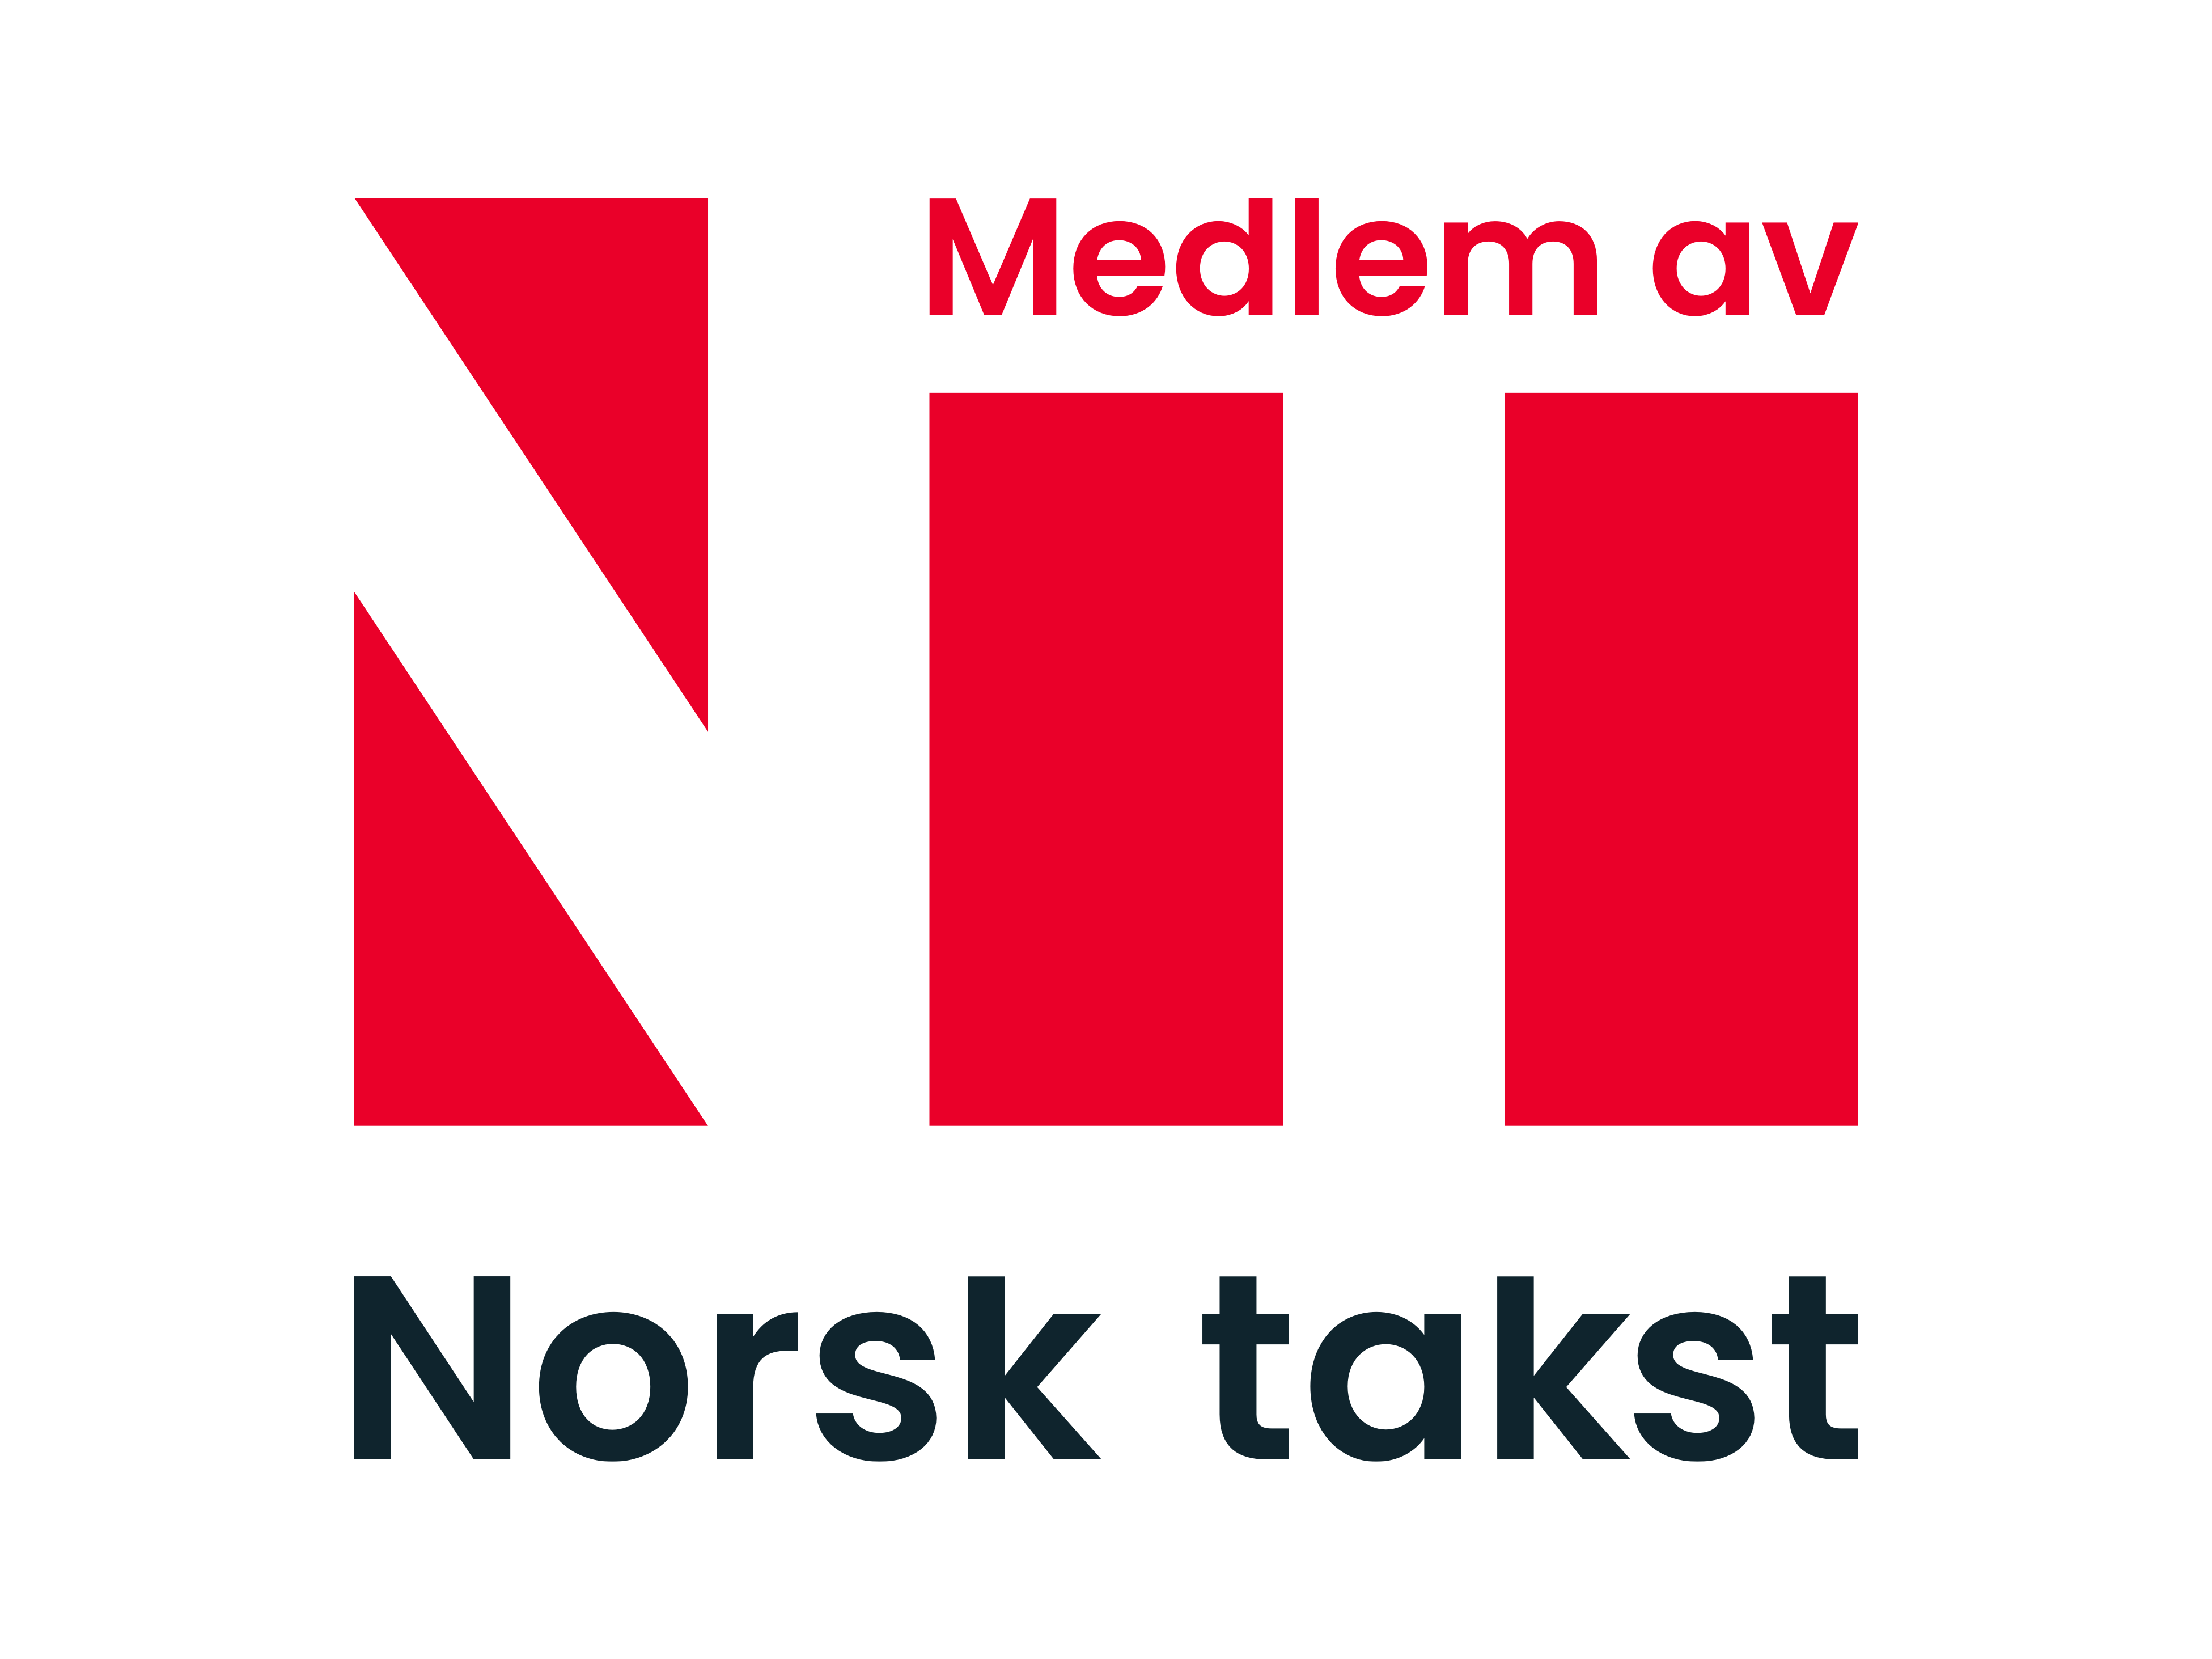 Norsk takst